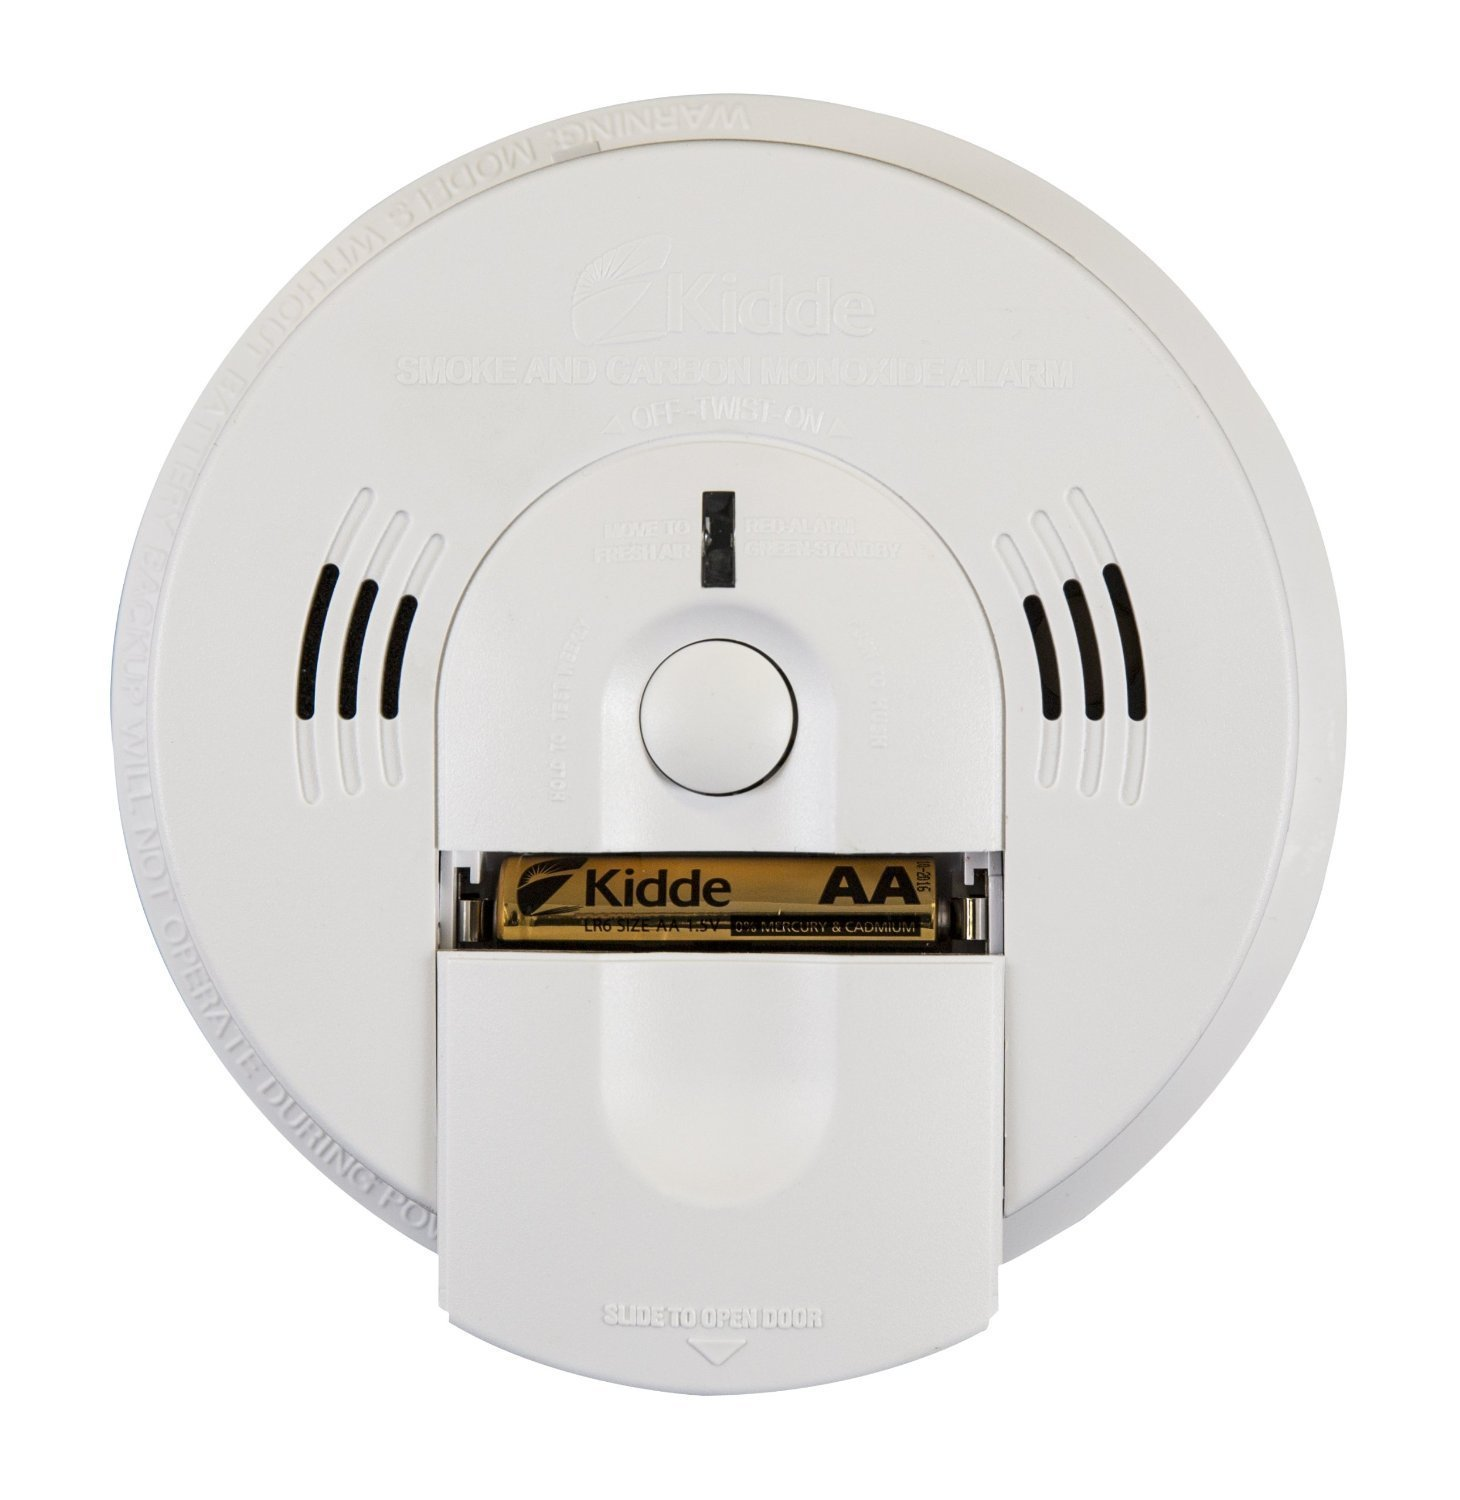 4 Pack of Kidde KN-COSM-BA Battery-Operated Combination Carbon Monoxide and Smoke Alarm with Talking Alarm